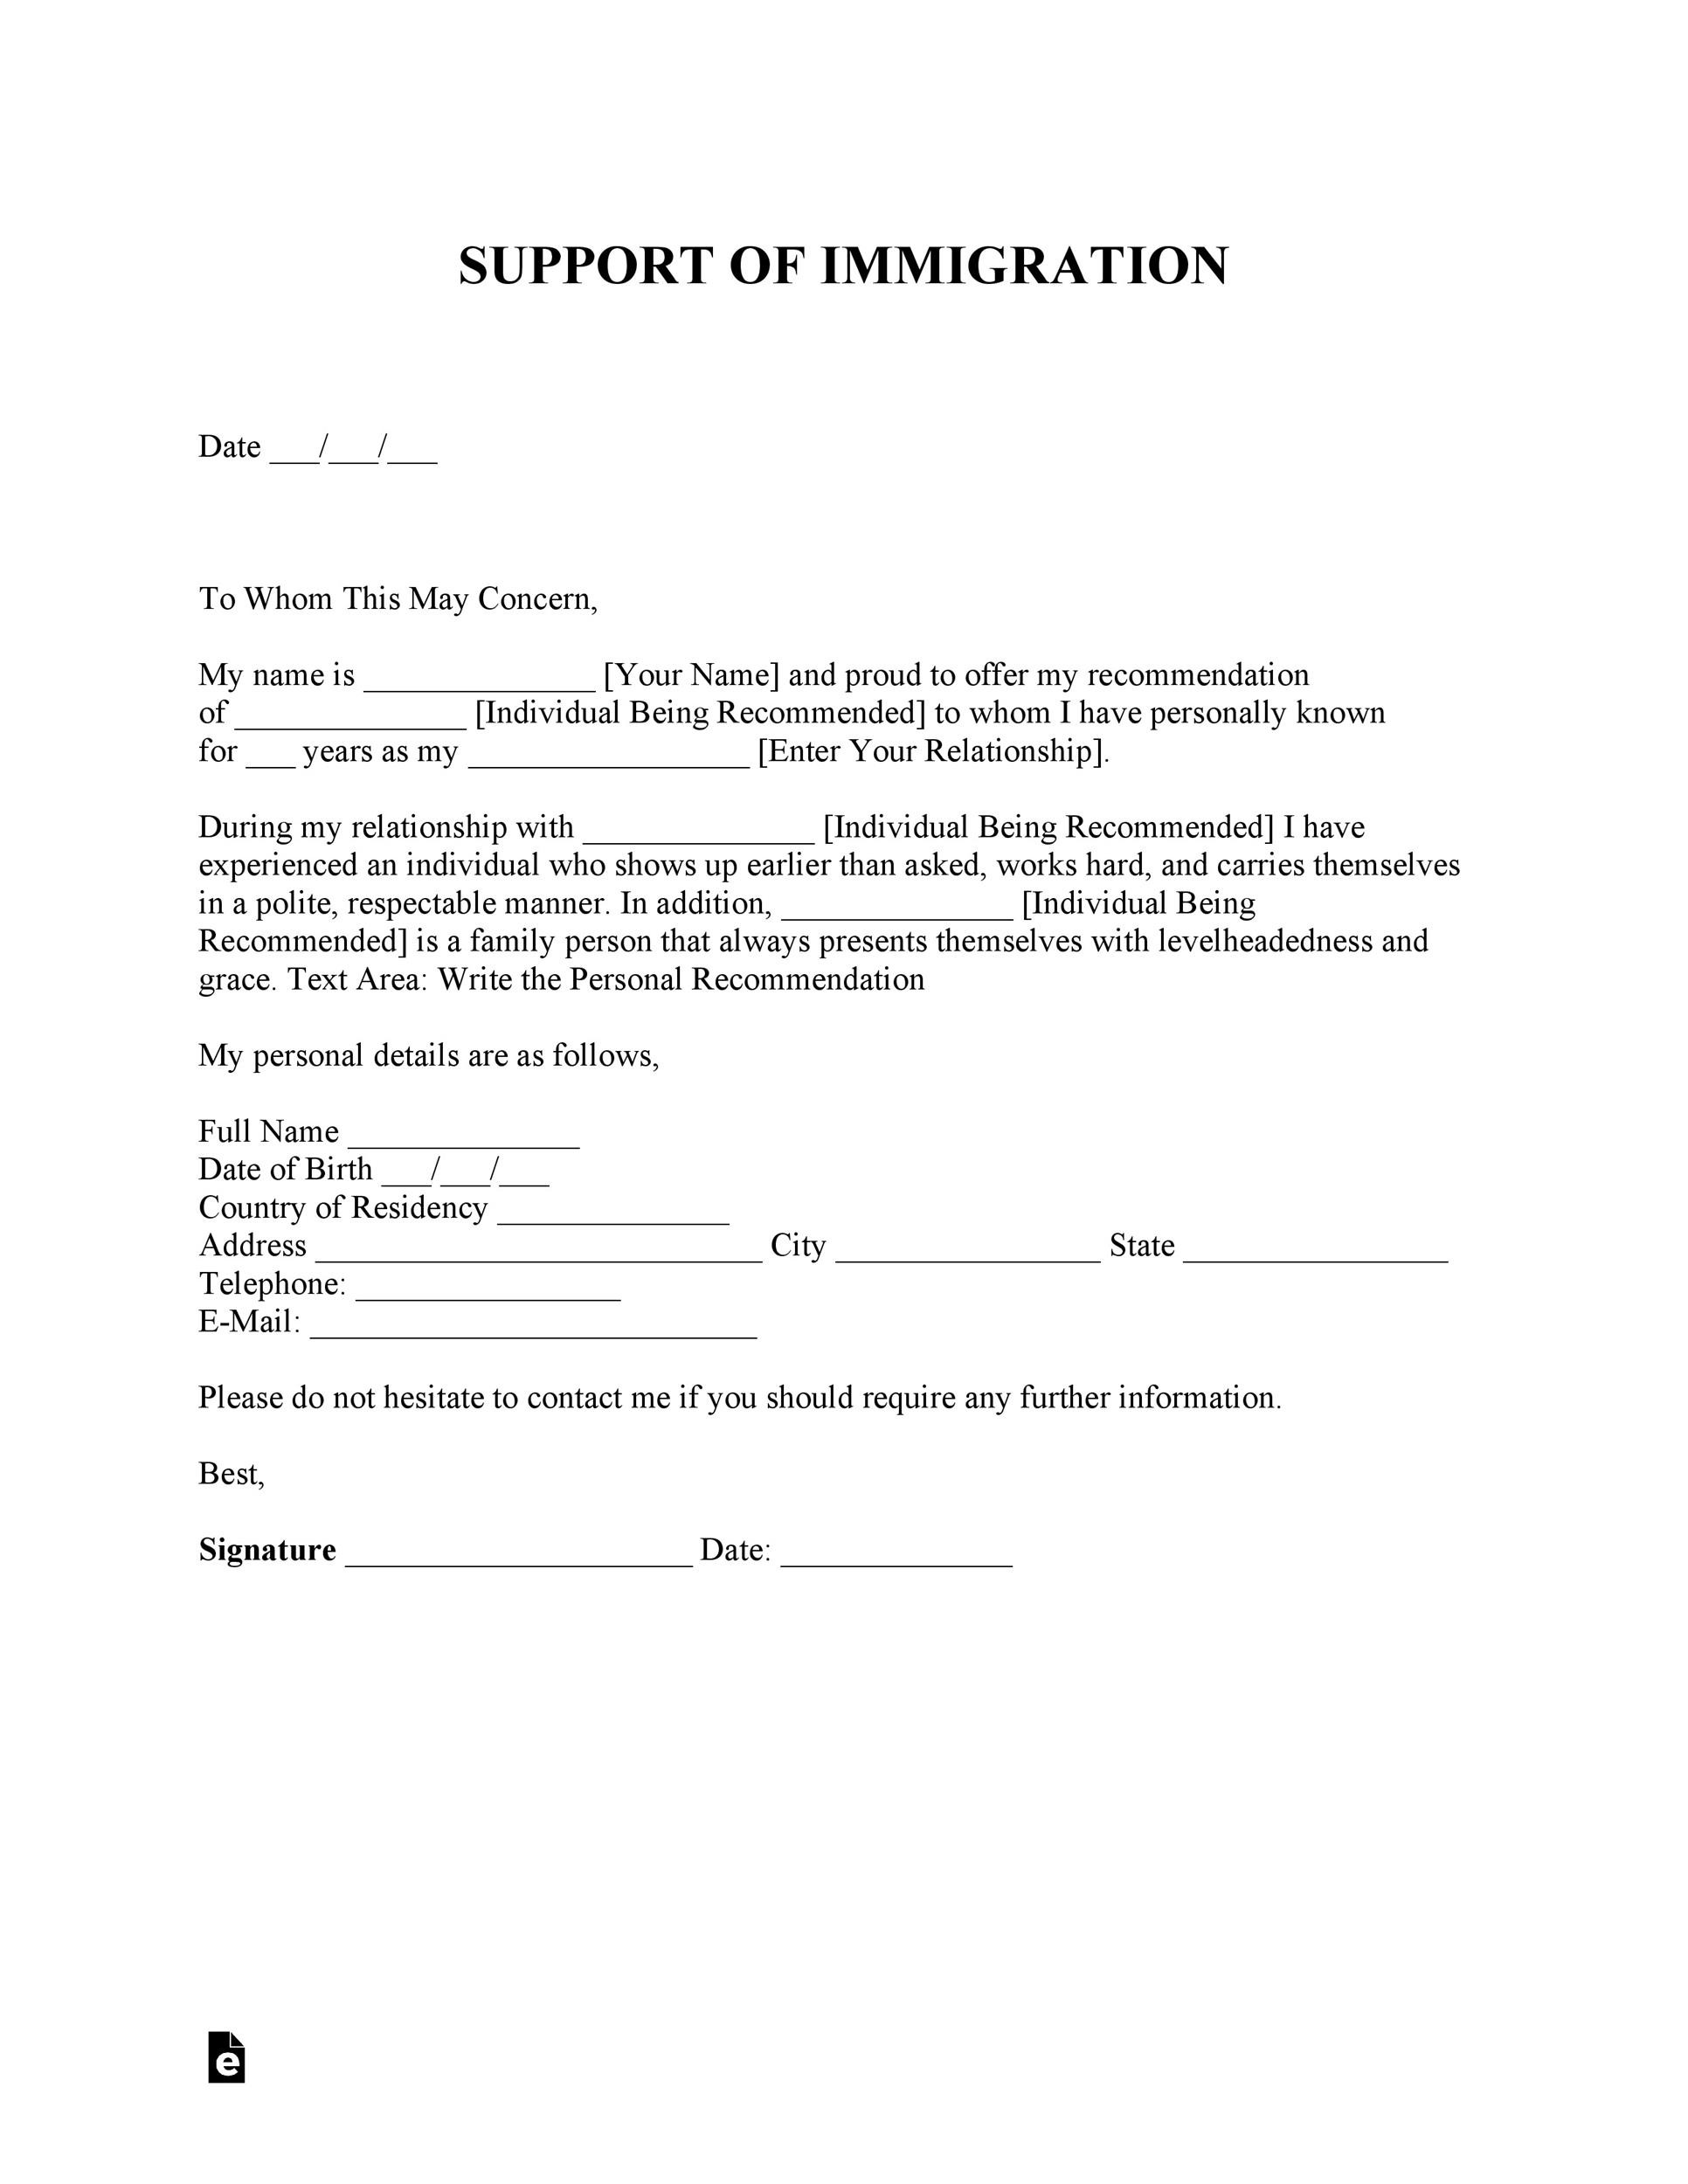 Free Immigration letter 02